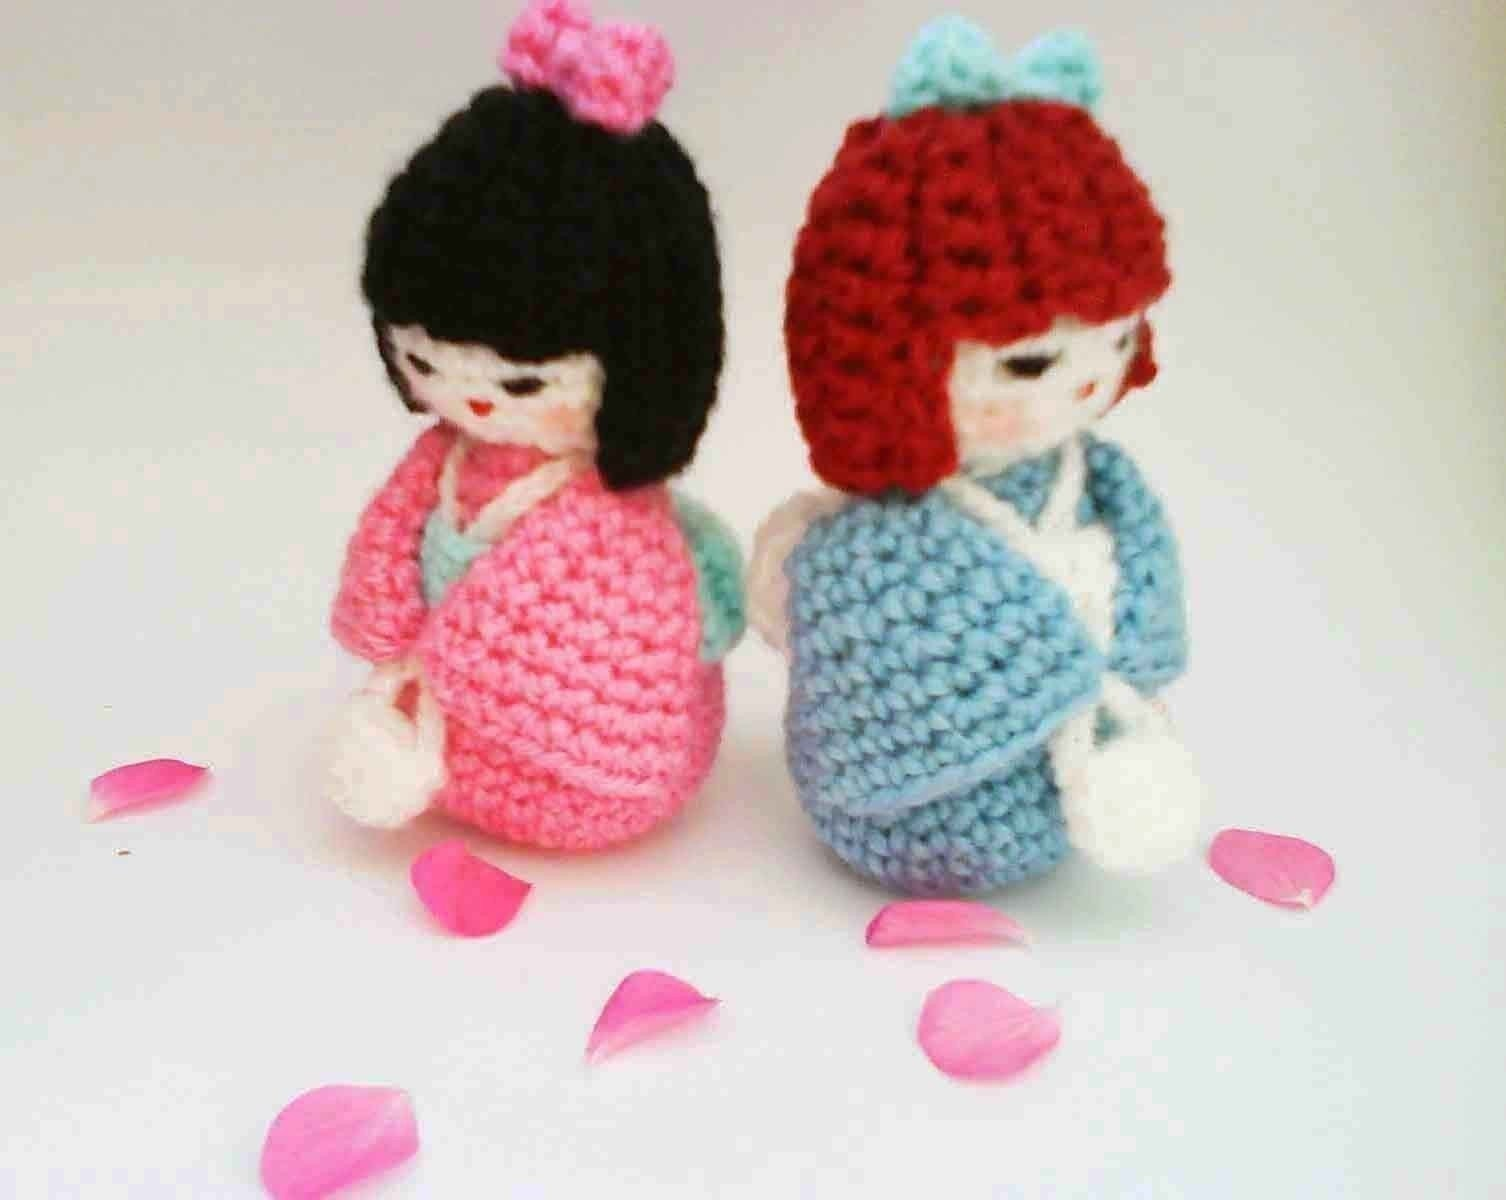 Shop for Crochet patterns 18 inches doll clothes online - Read